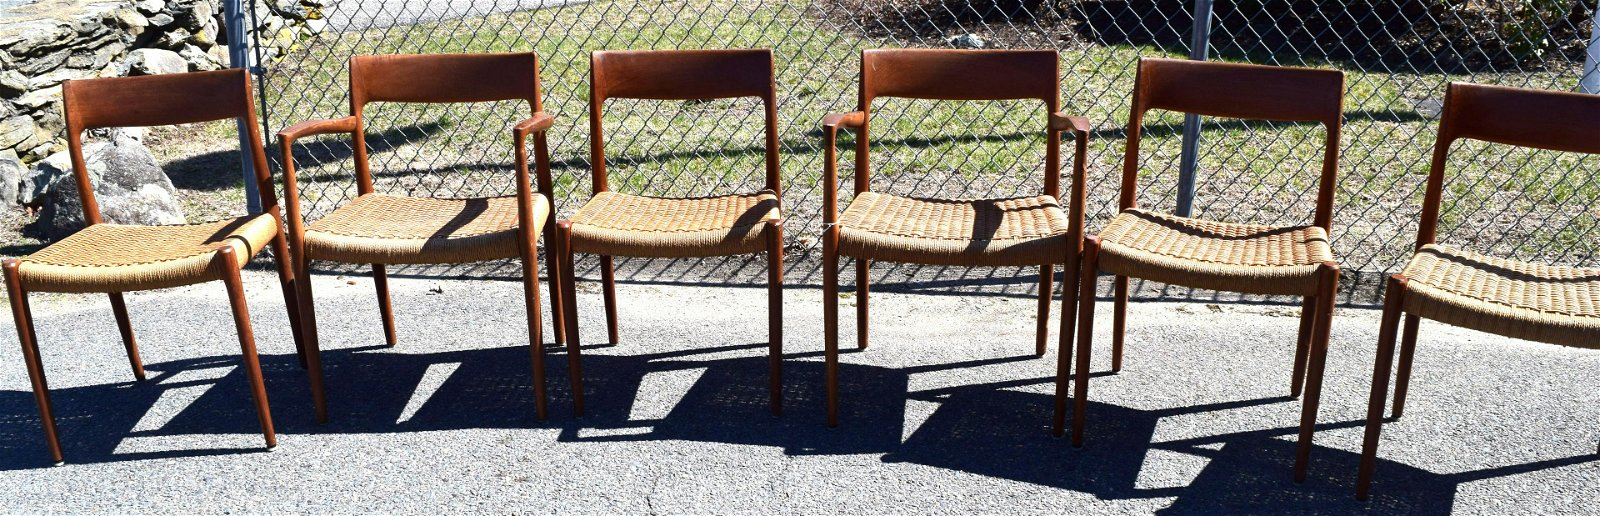 SET OF SIX NIELS MOLLER TEAK DINING CHAIRS: